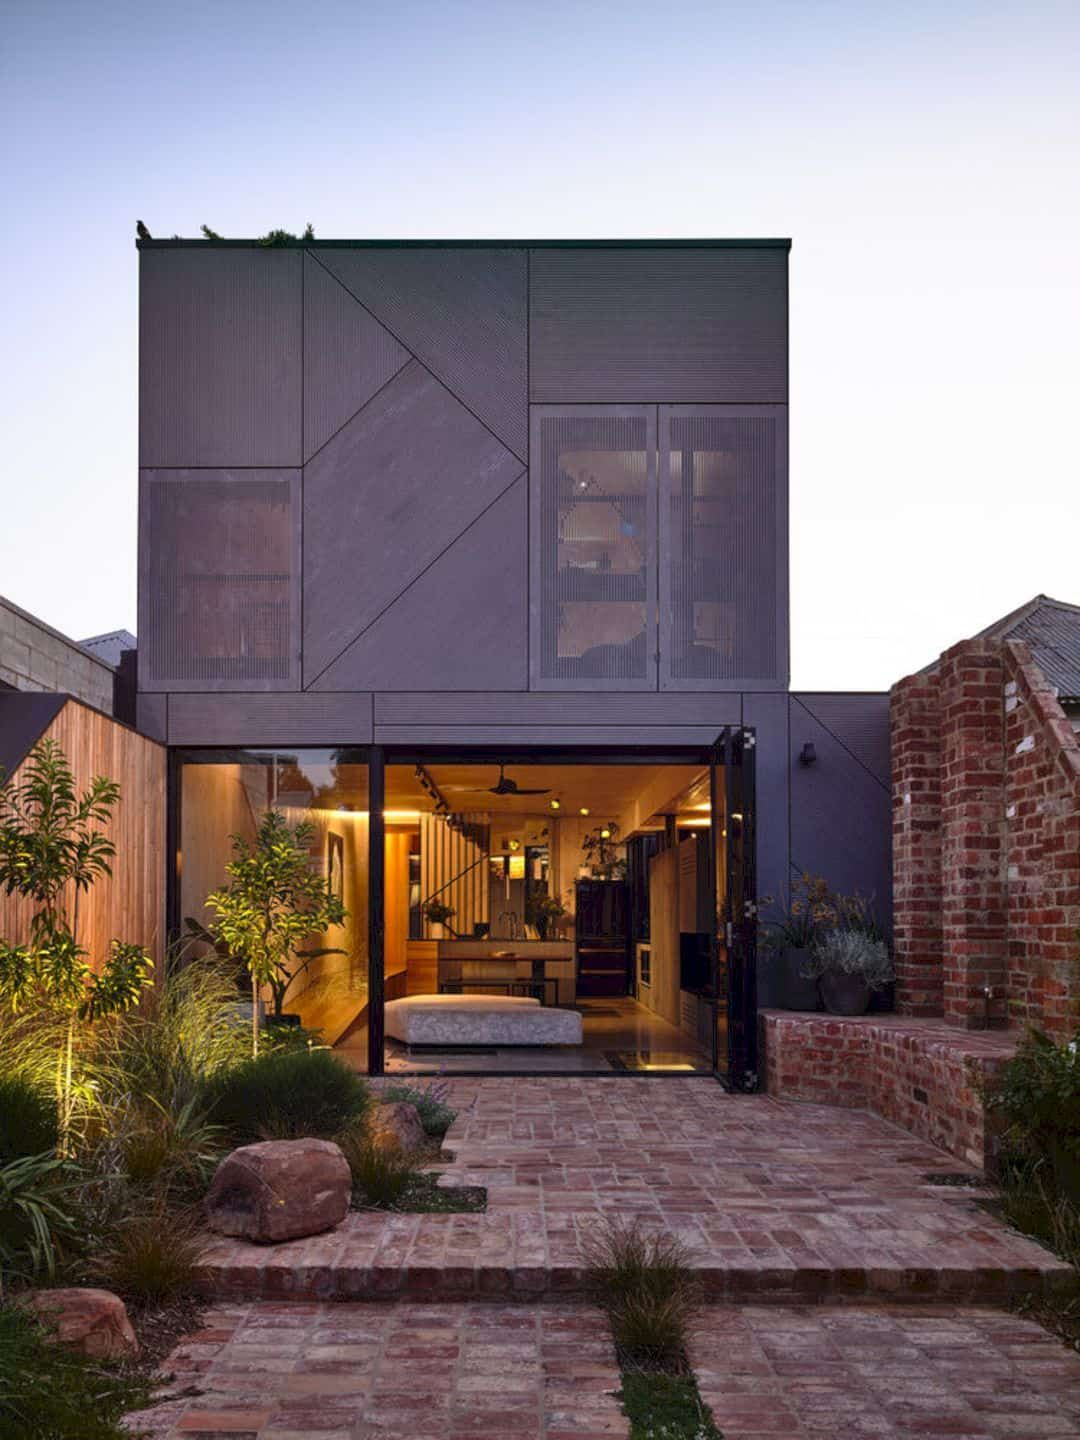 Union House A Fun Multi Level Home With Dramatic And Playful Features And Thoughtful Design In 2020 House Architecture Design Architecture House Design